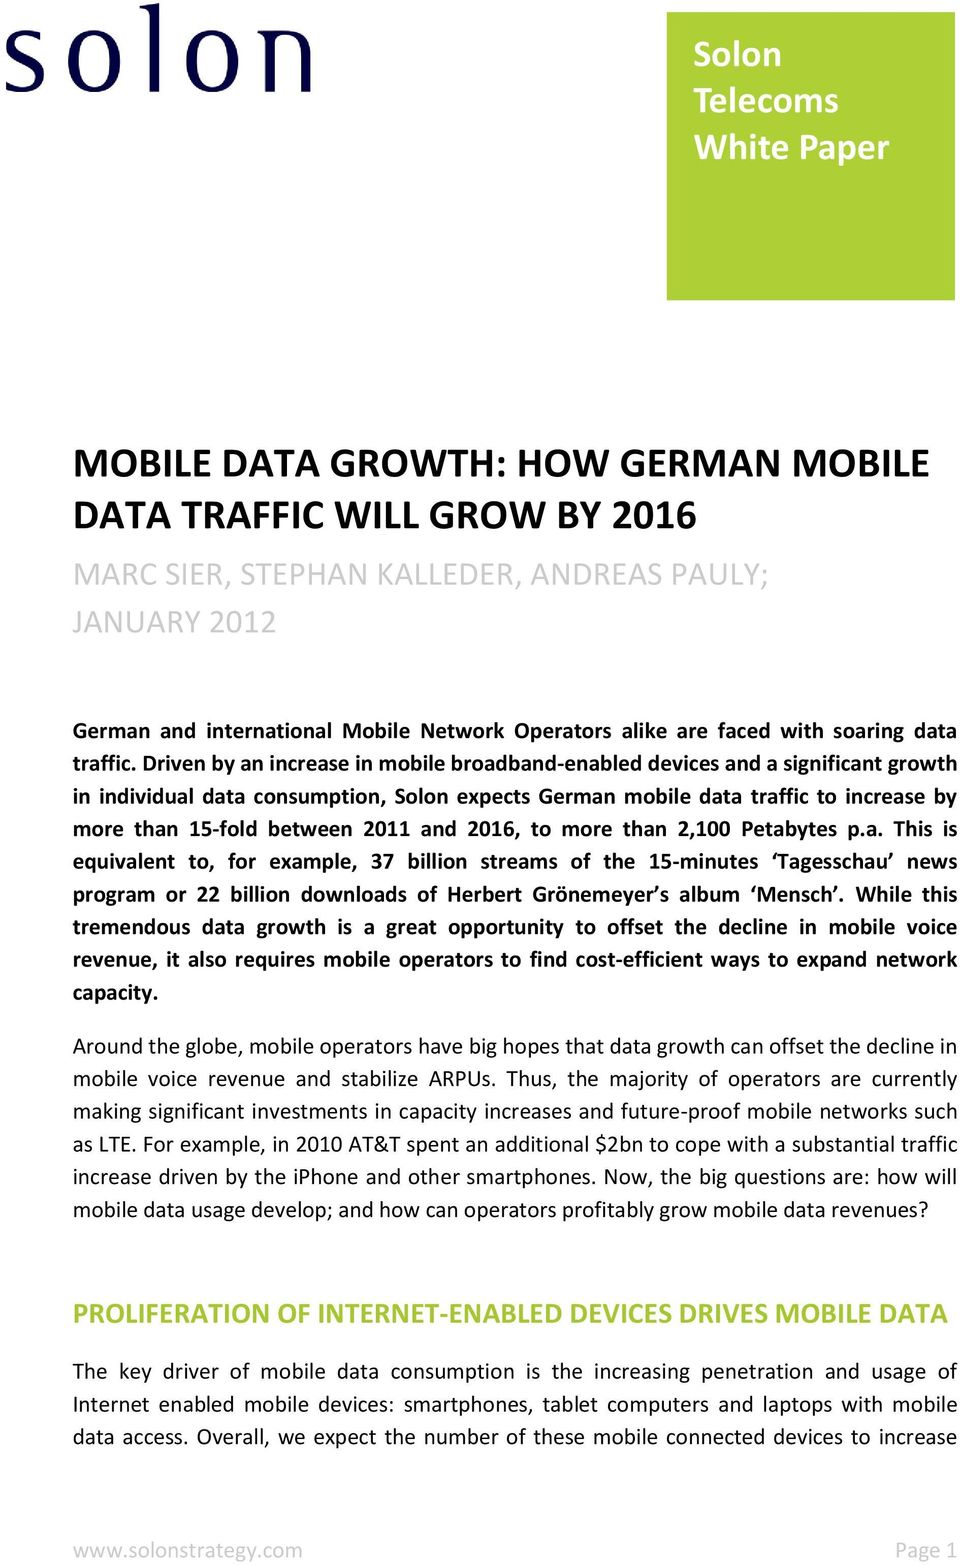 Driven by an increase in mobile broadband-enabled devices and a significant growth in individual data consumption, Solon expects German mobile data traffic to increase by more than 15-fold between